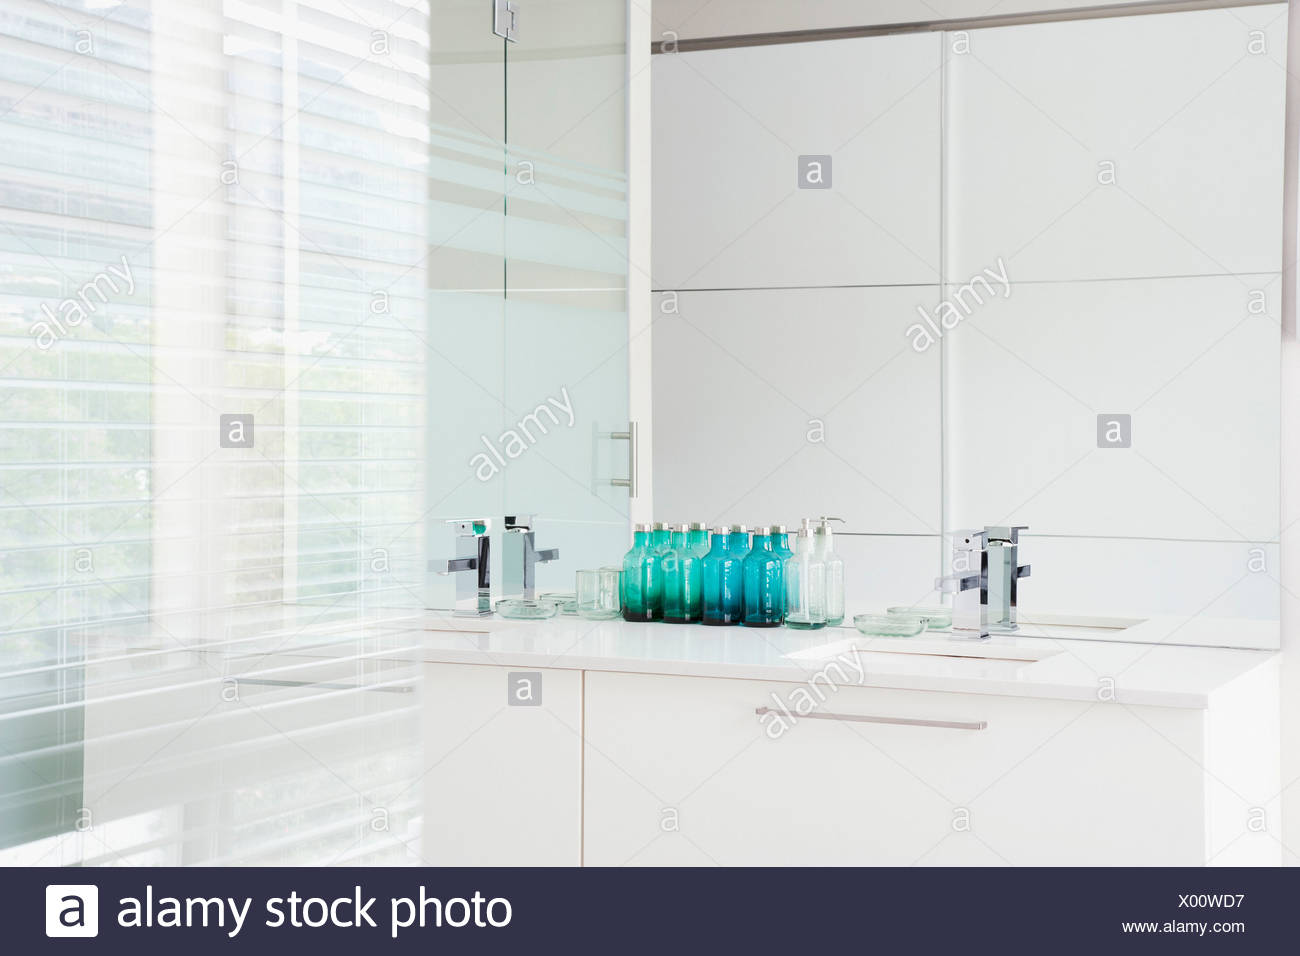 Glass walls and sink in modern, white bathroom Stock Photo ...